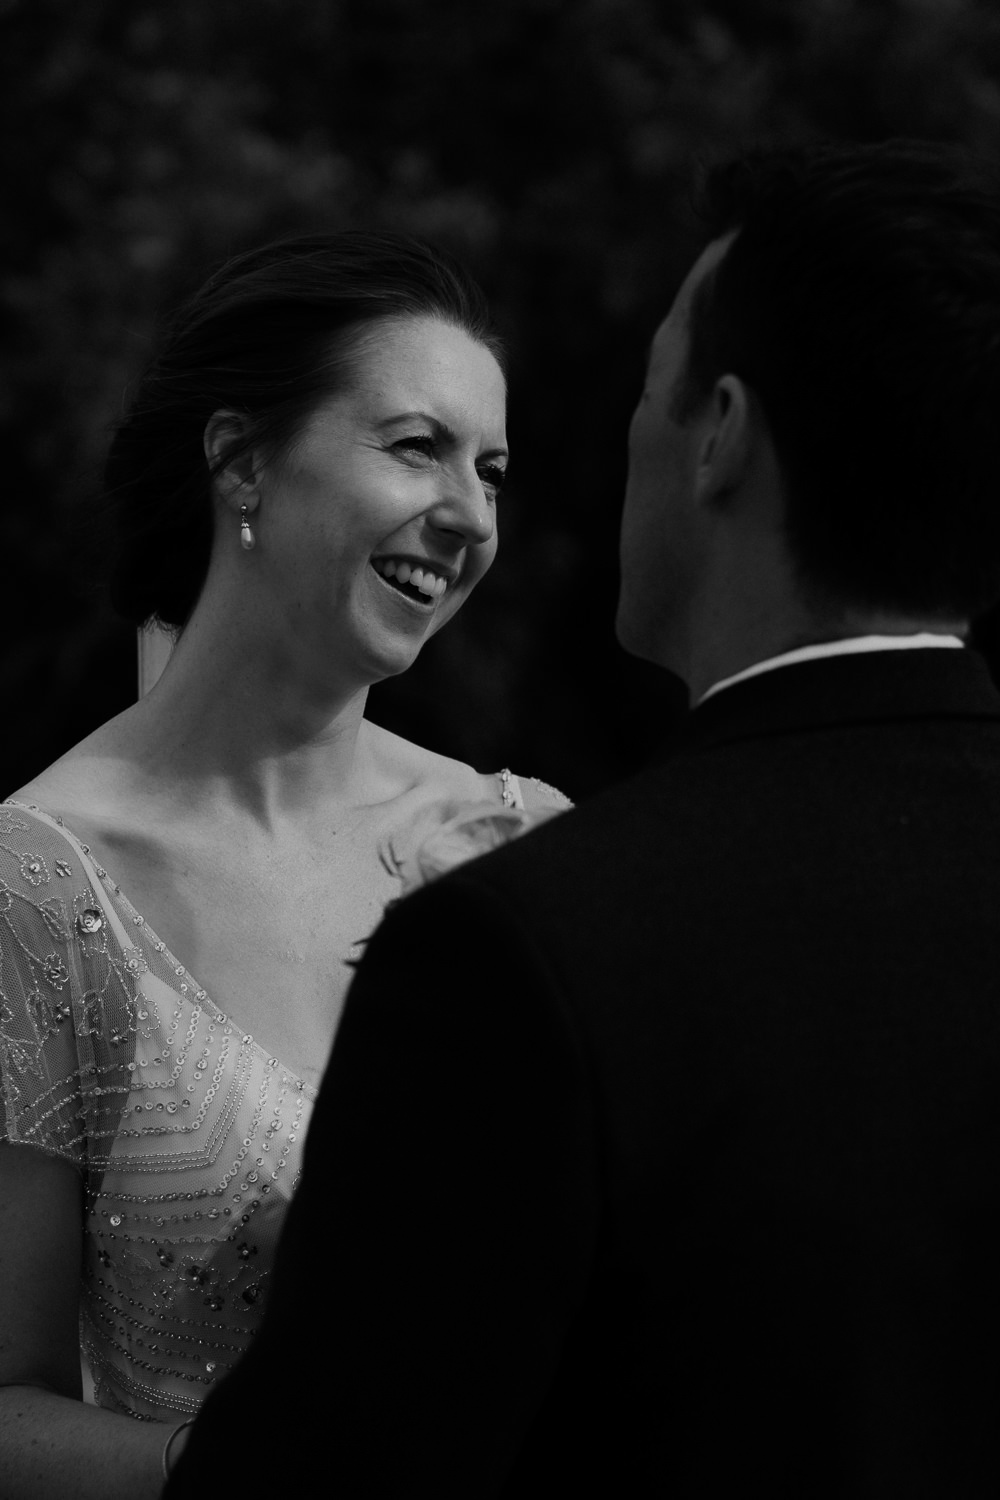 portrait of bride and groom by photographer Mark hadden amsterdam